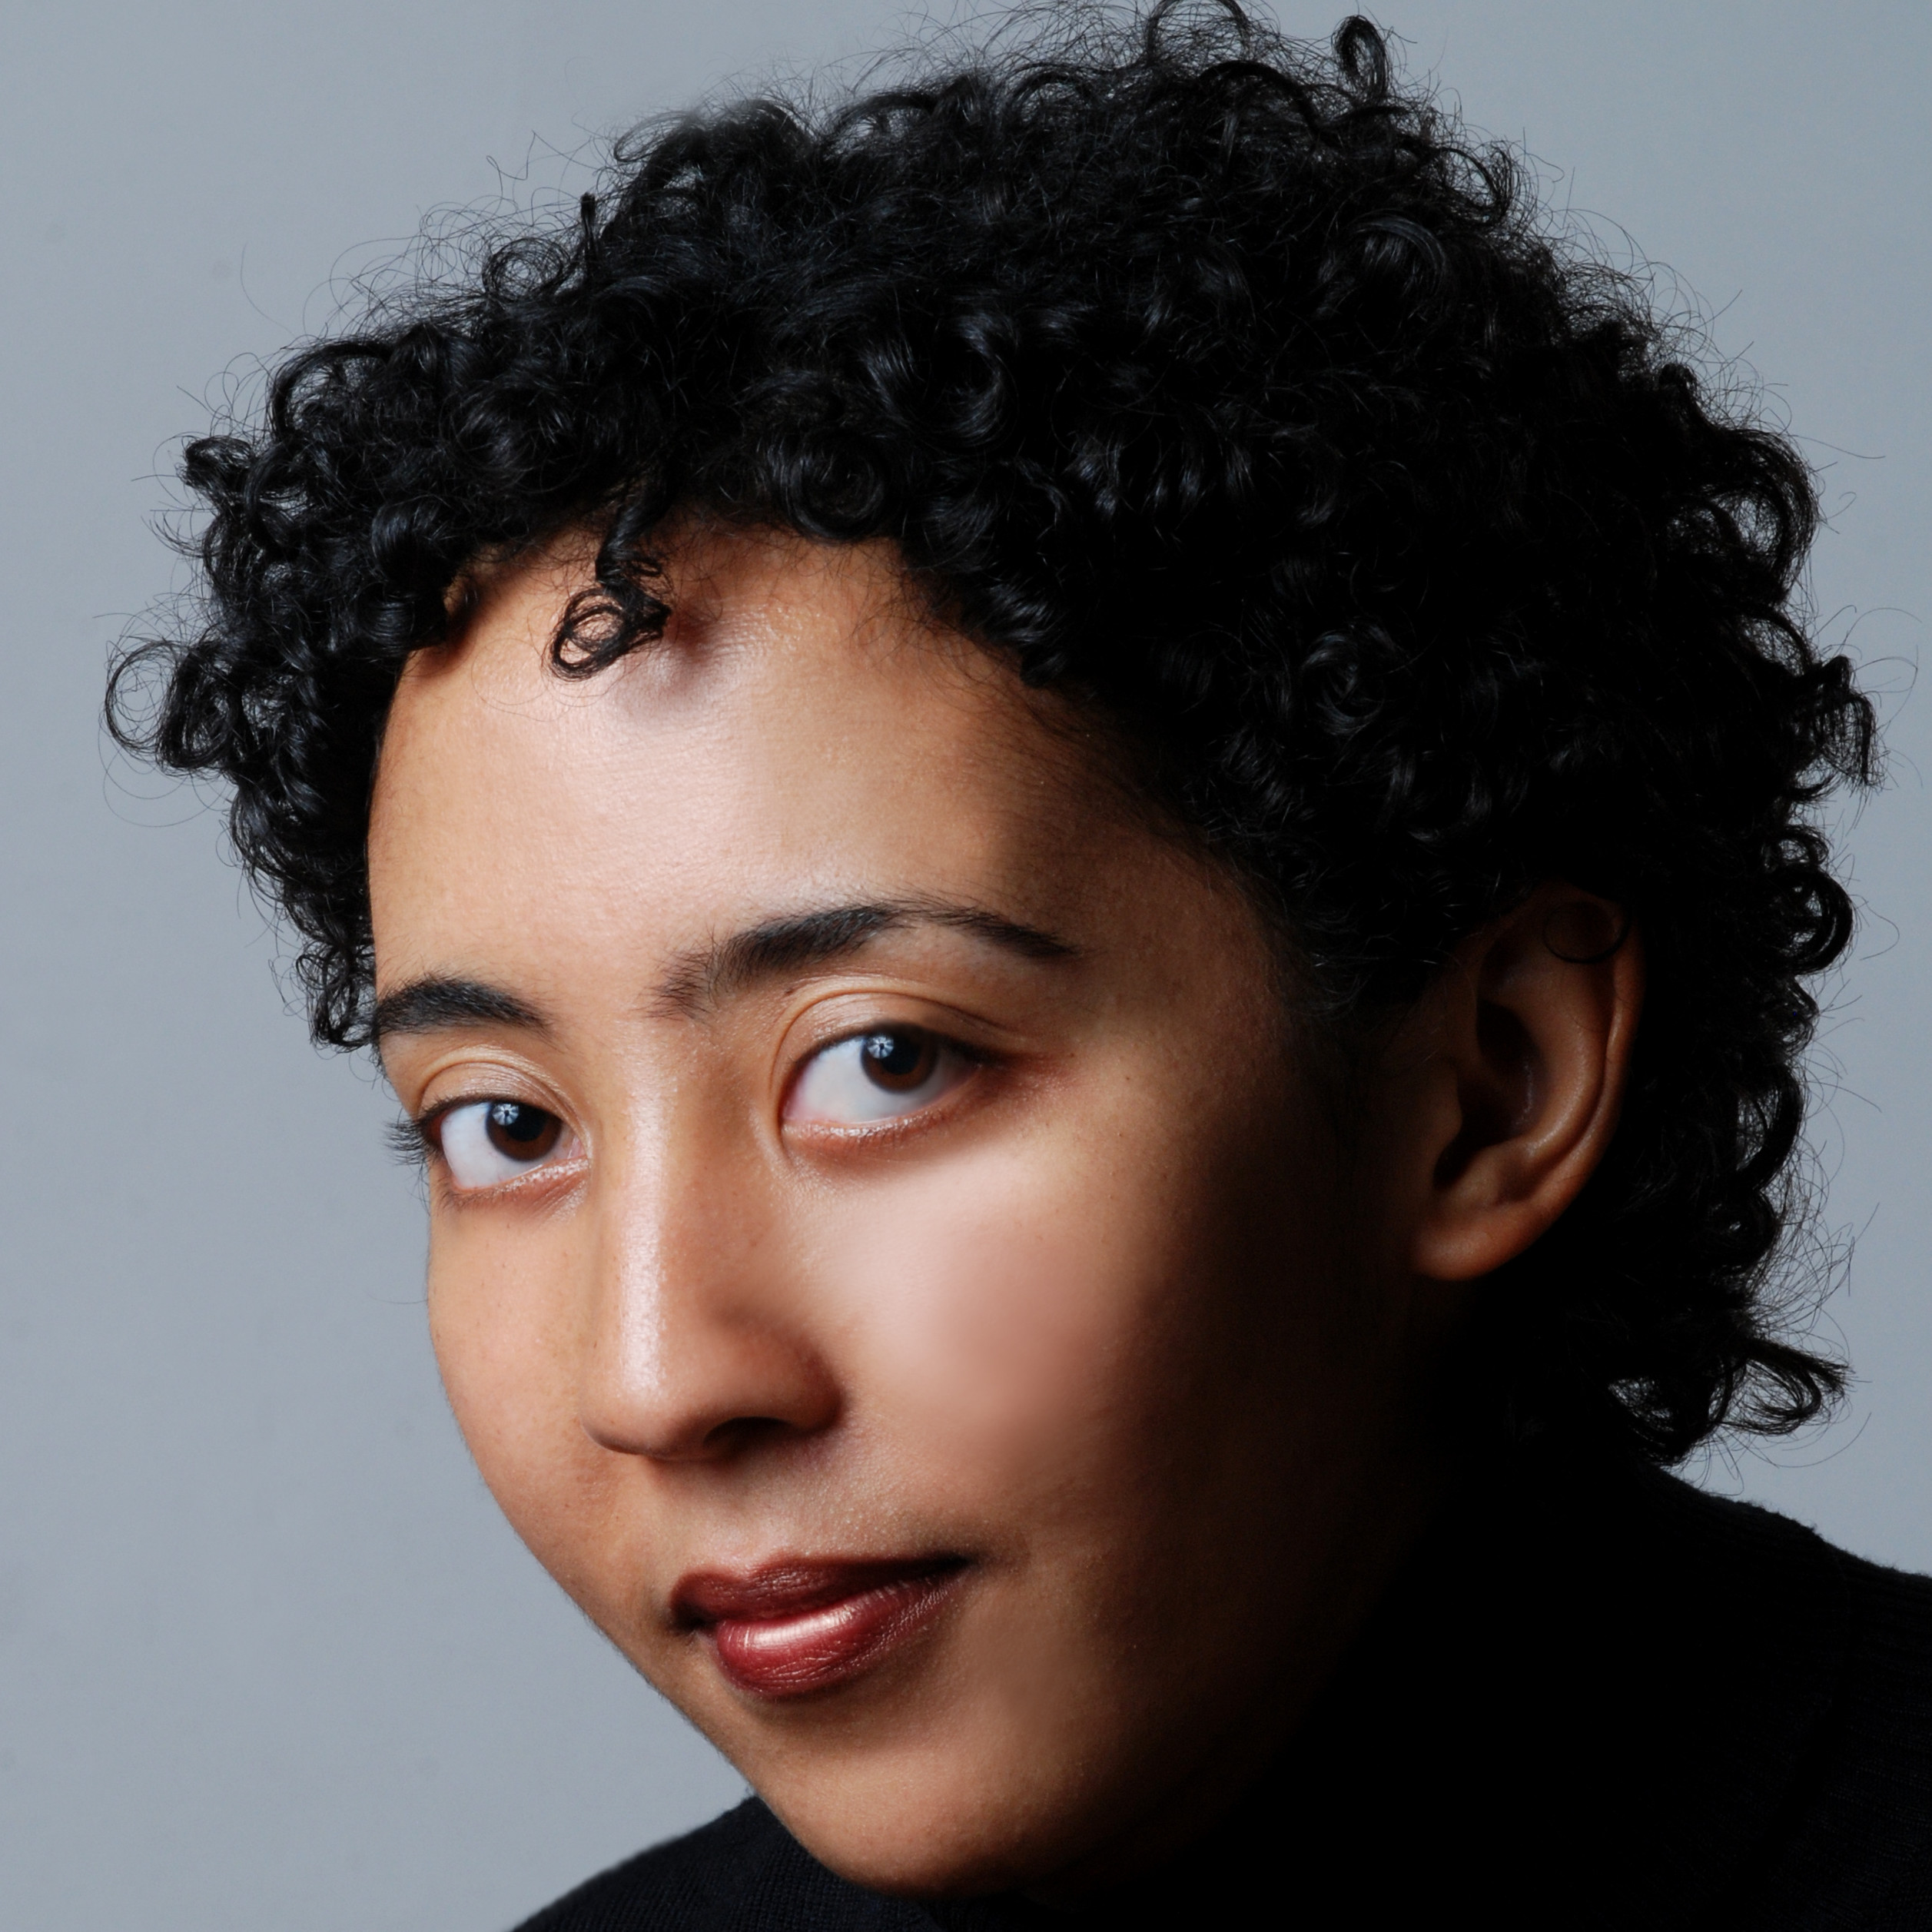 Namwali Serpell. Photo: Peg Skorpinski